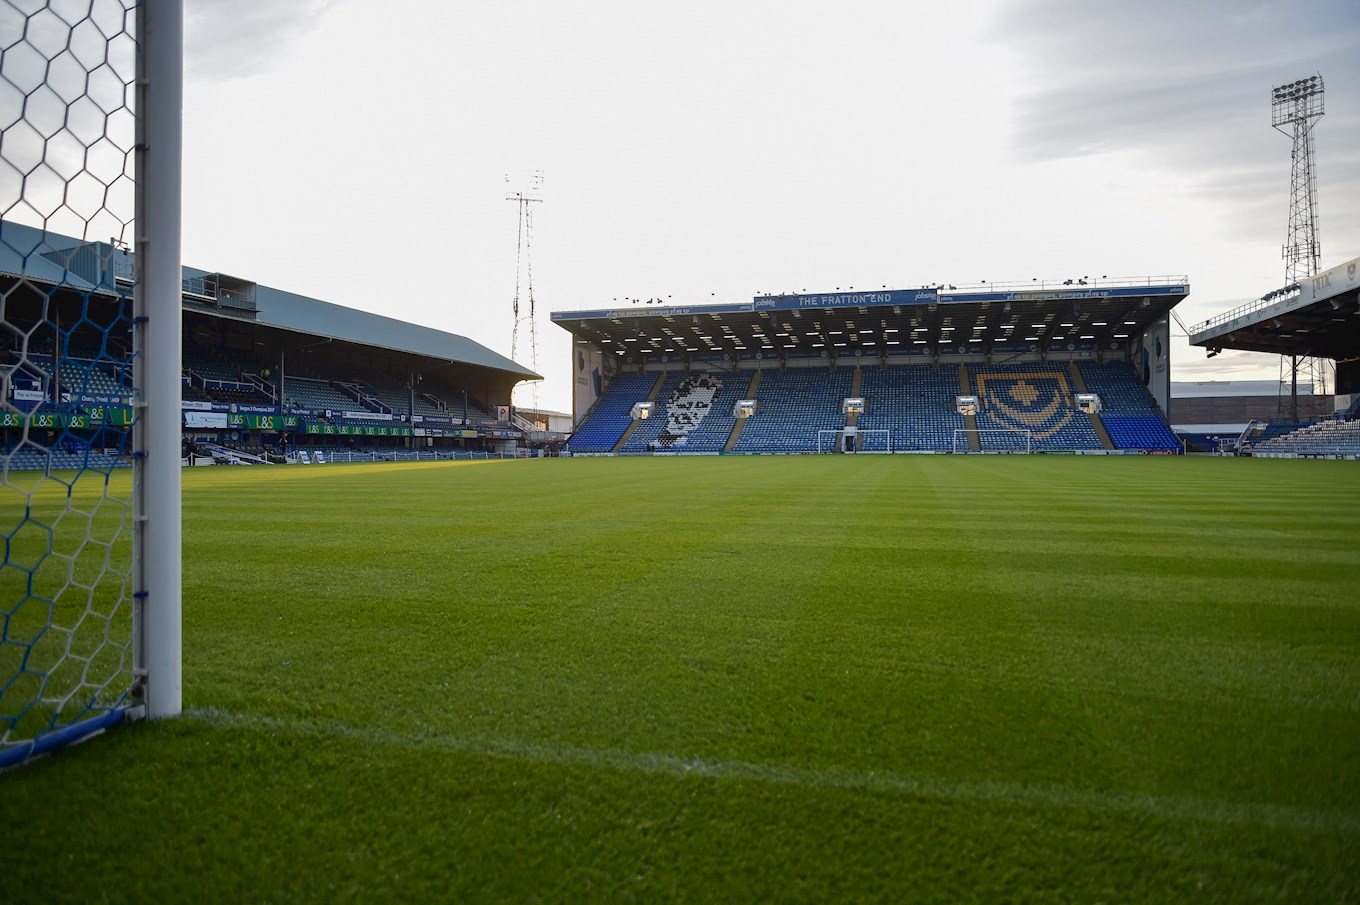 Fratton Park, Portsmouth - where the Hatters will kick-off the 2018-19 season on August 4th